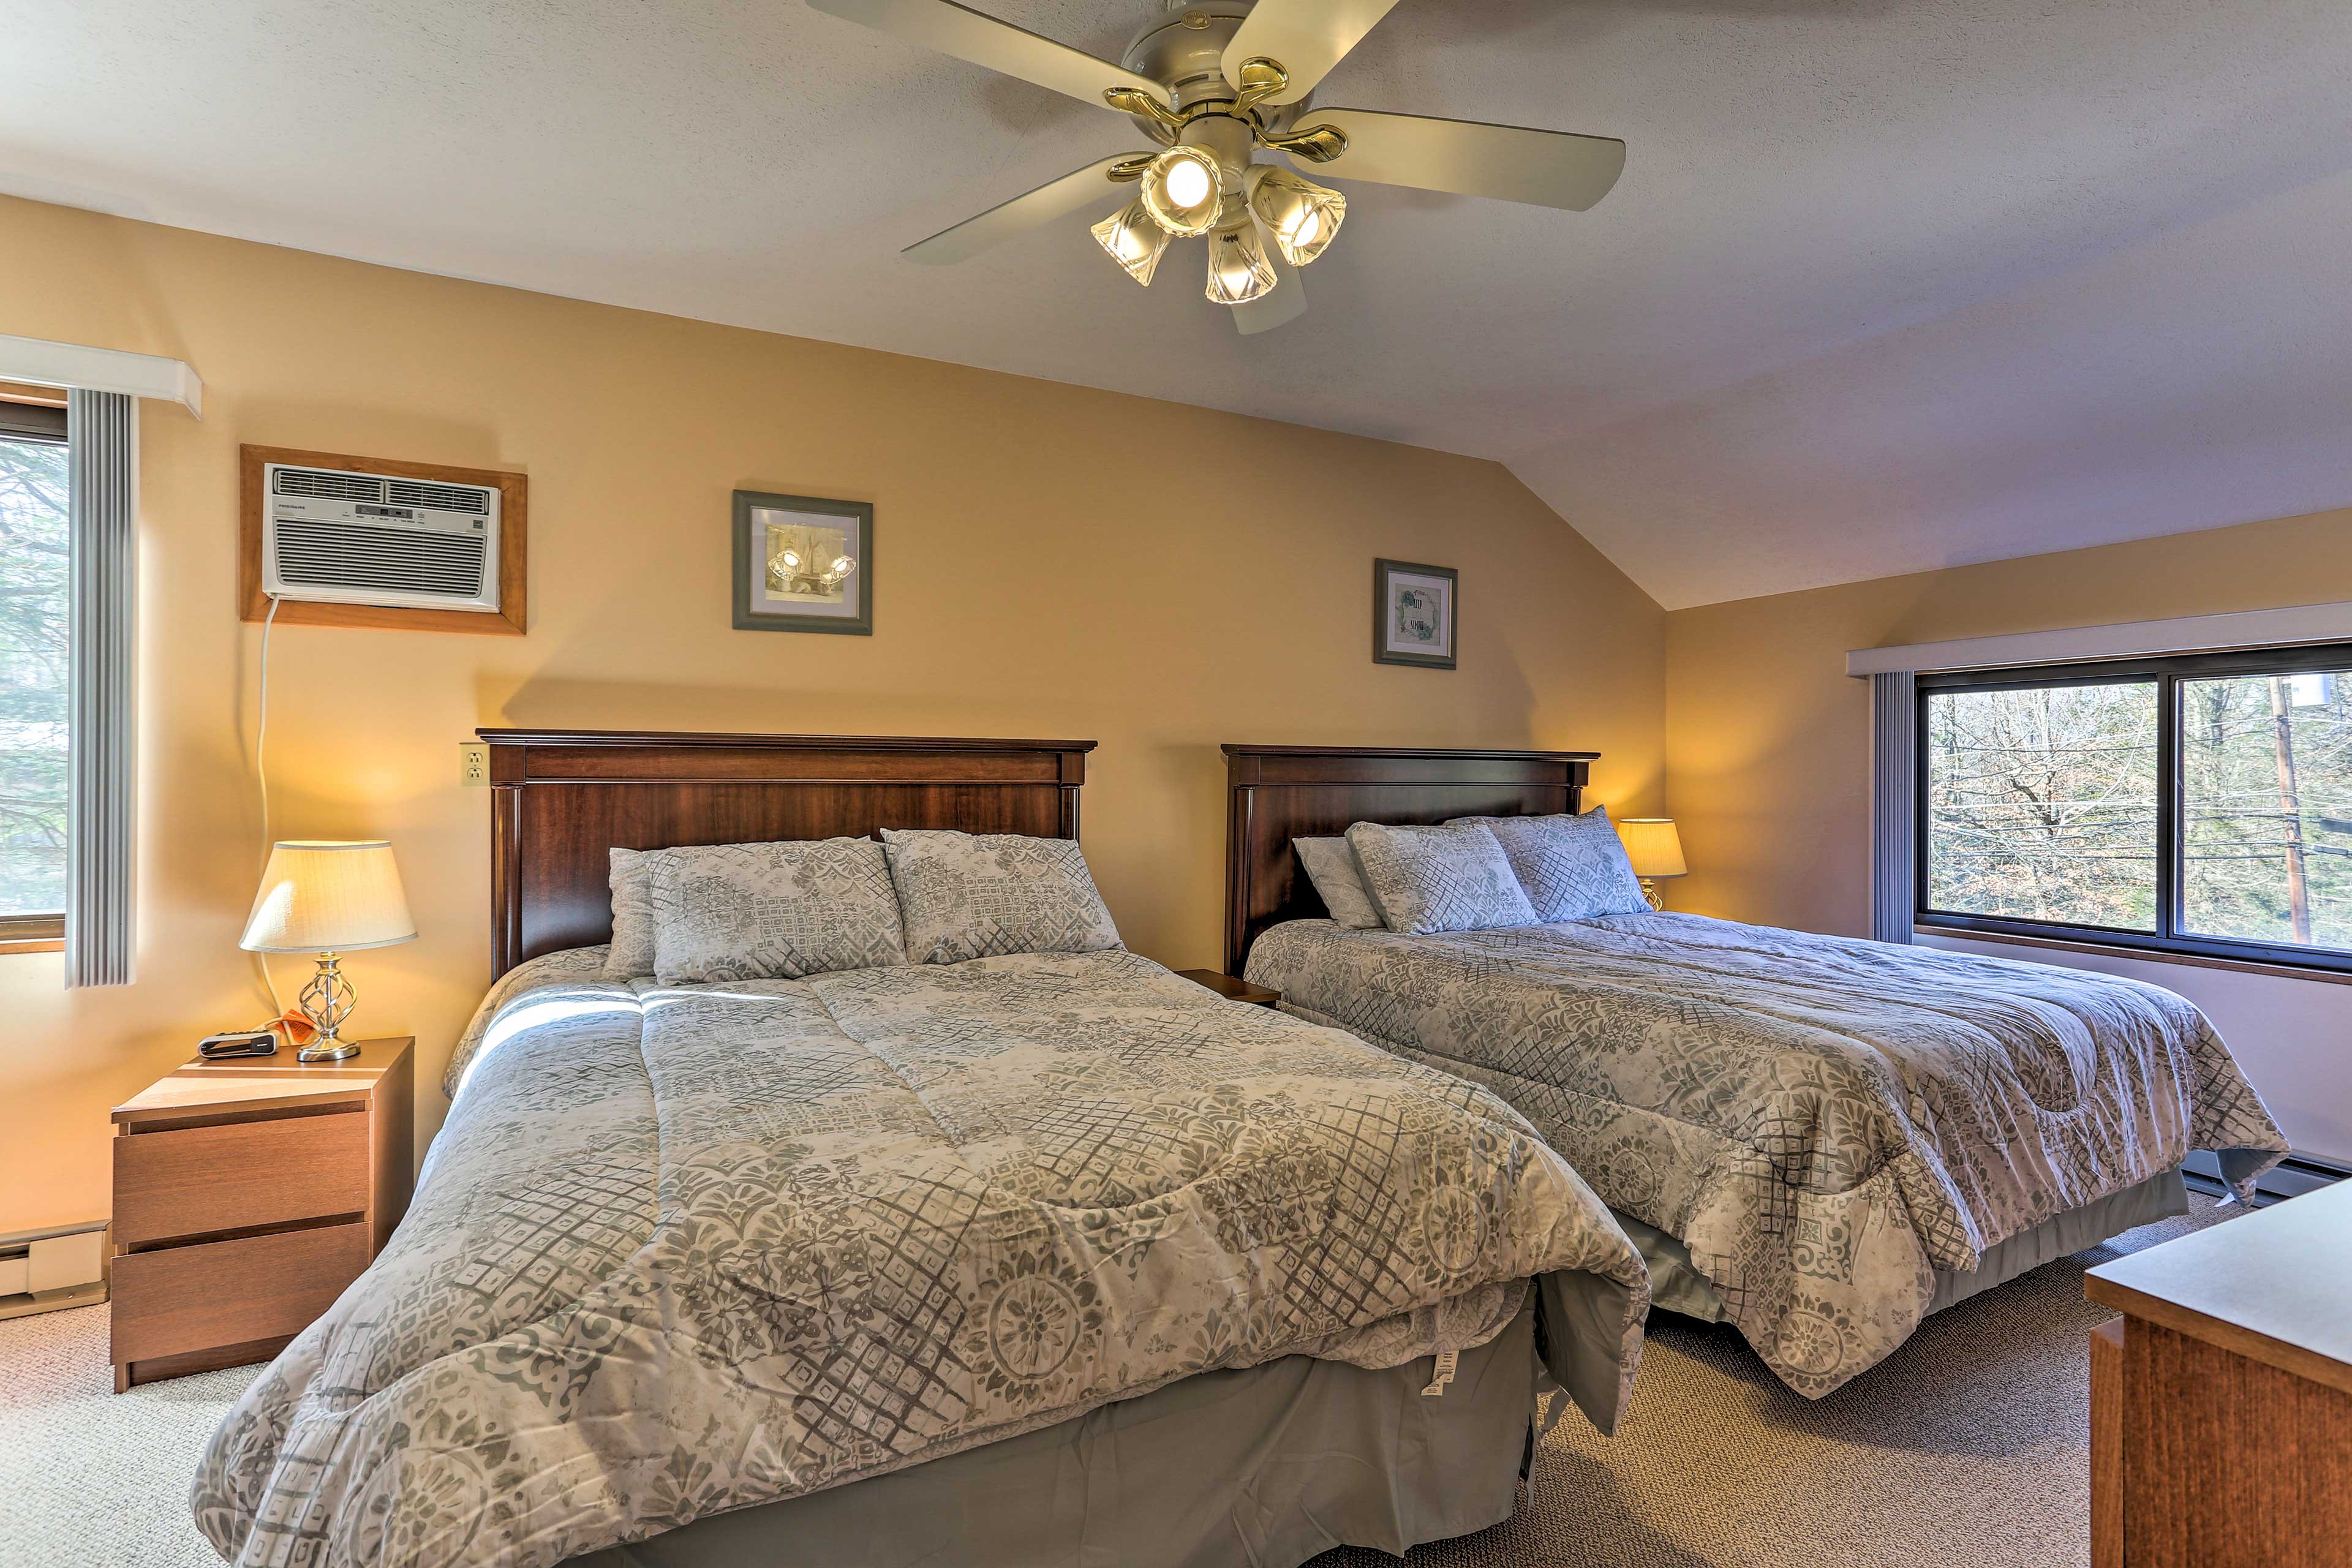 The third bedroom is complete with 2 queen-sized beds.